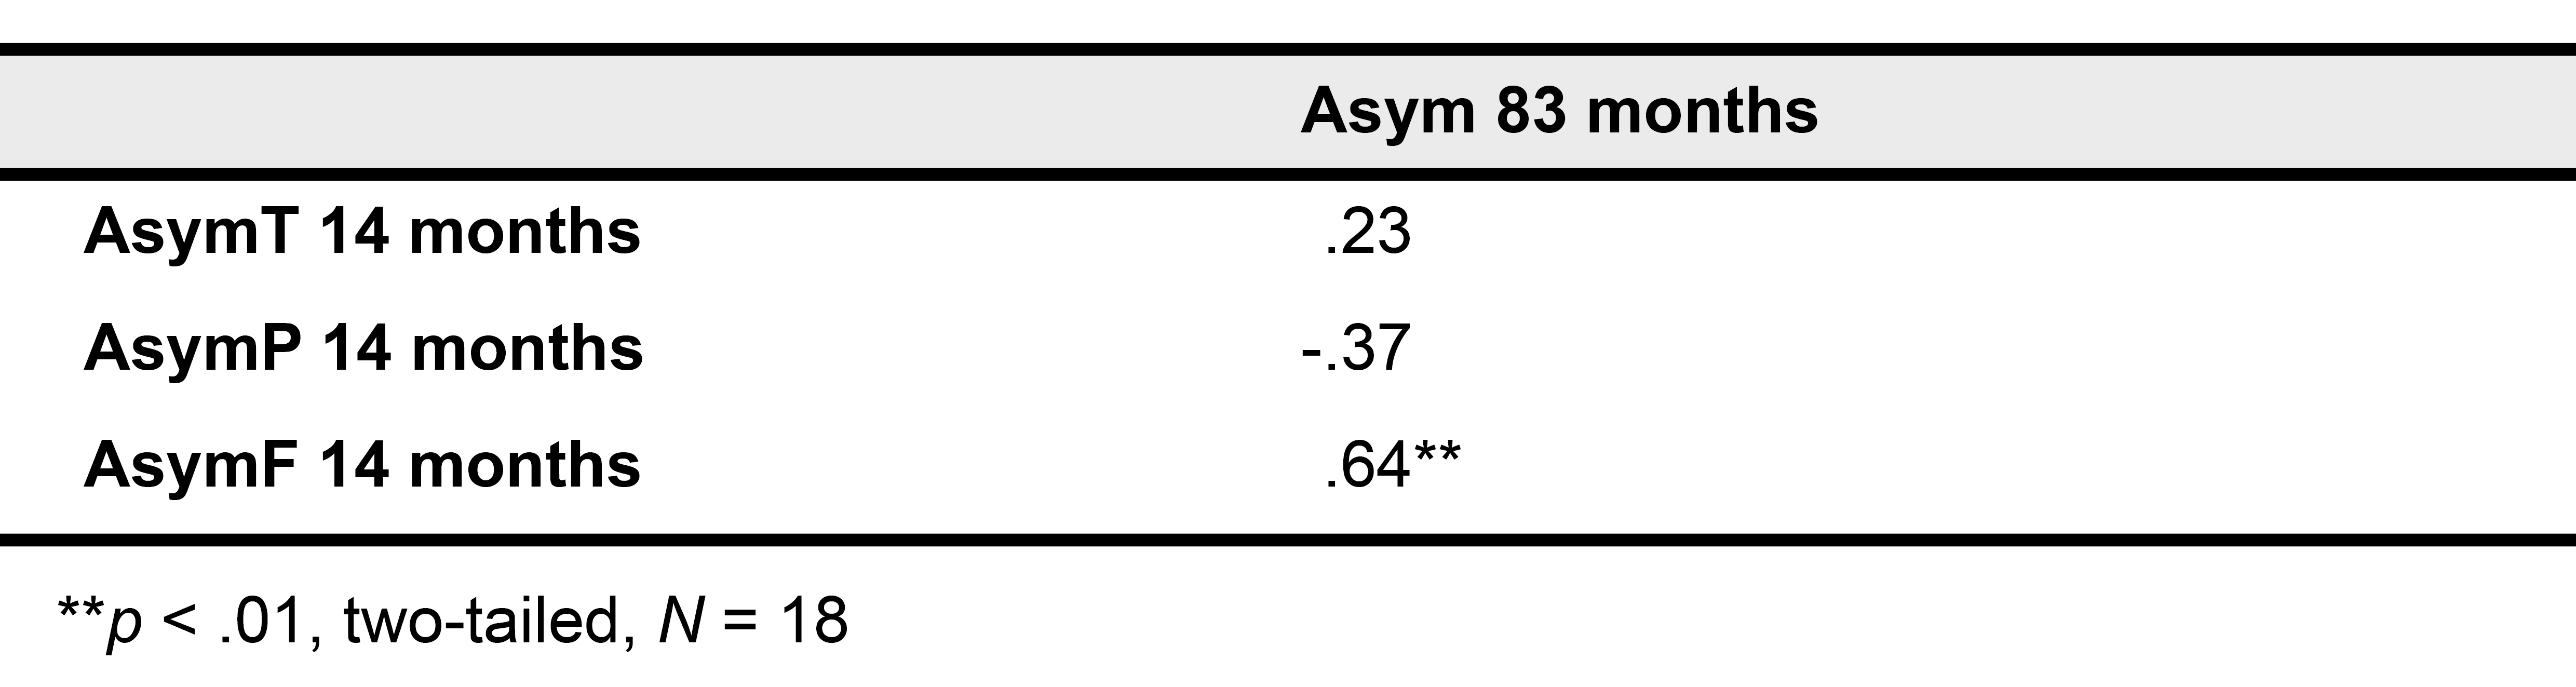 Pearson correlations between frontal (AsymF), temporal (AsymT), parietal (AsymP) alpha asymmetry scores as well as asymmetry scores of individual frontal electrodes (F3-4, F7-8, F9-10) at 14 months of age (first visit) and frontal (AsymF), temporal (AsymT), parietal (AsymP) asymmetry and asymmetry scores of individual frontal electrodes (F3-4, F7-8, F9-10) scores at 83 months of age (second visit).